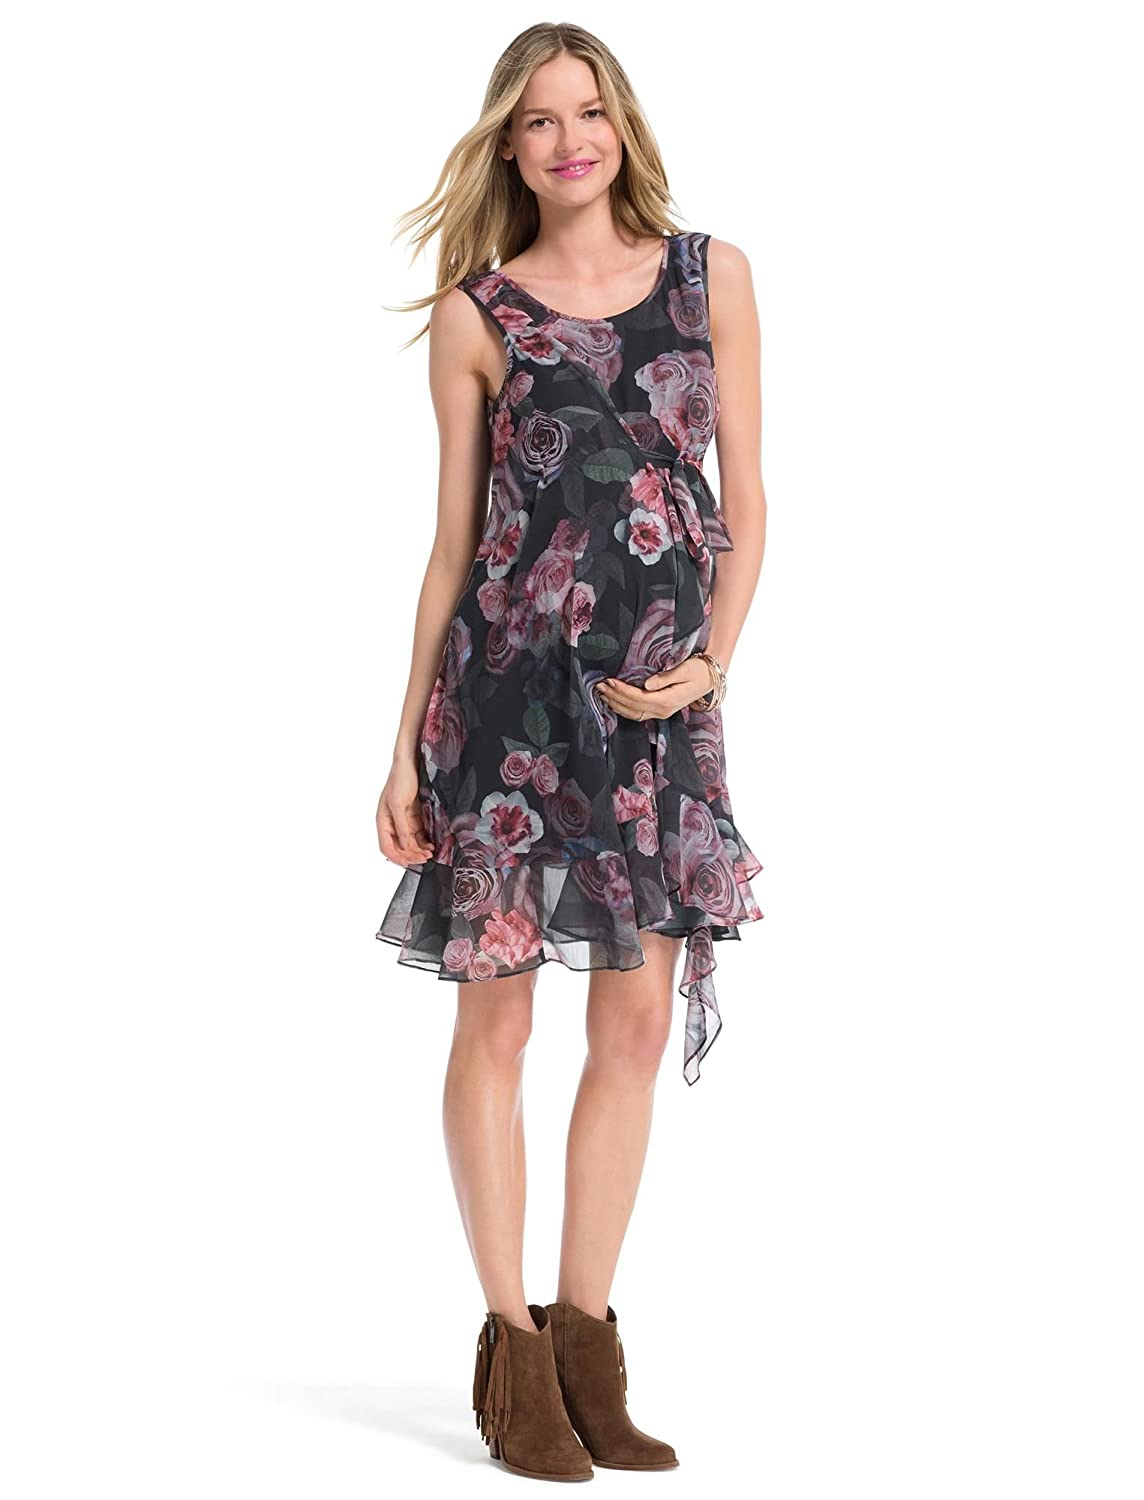 Jessica simpson belted maternity dress at amazon womens clothing jessica simpson belted maternity dress at amazon womens clothing store ombrellifo Image collections